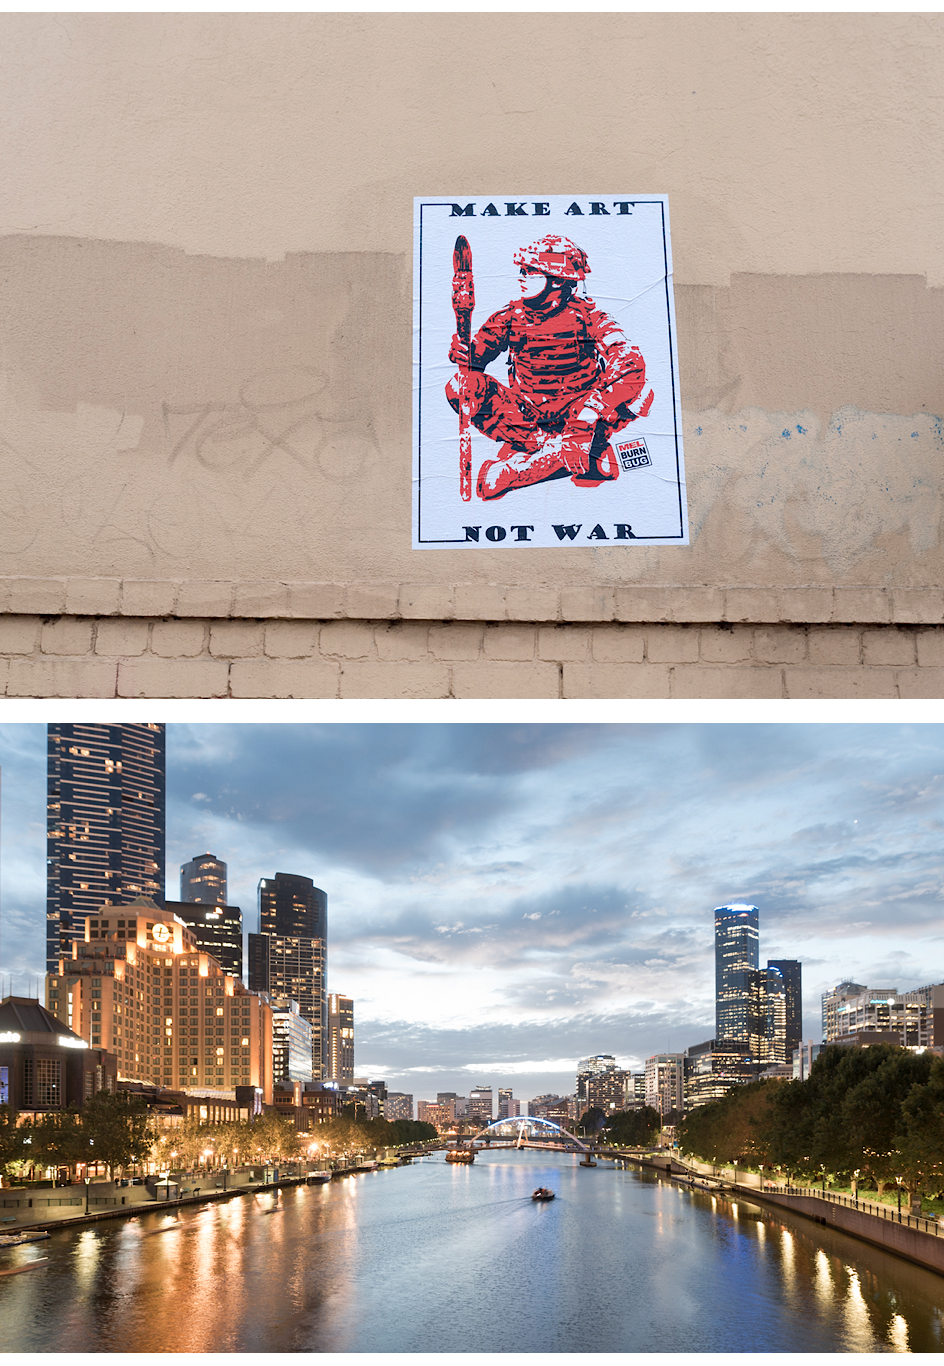 Make Art not War in der Nähe vom Victoria Markt, Yarra River von der Princes Bridge aus